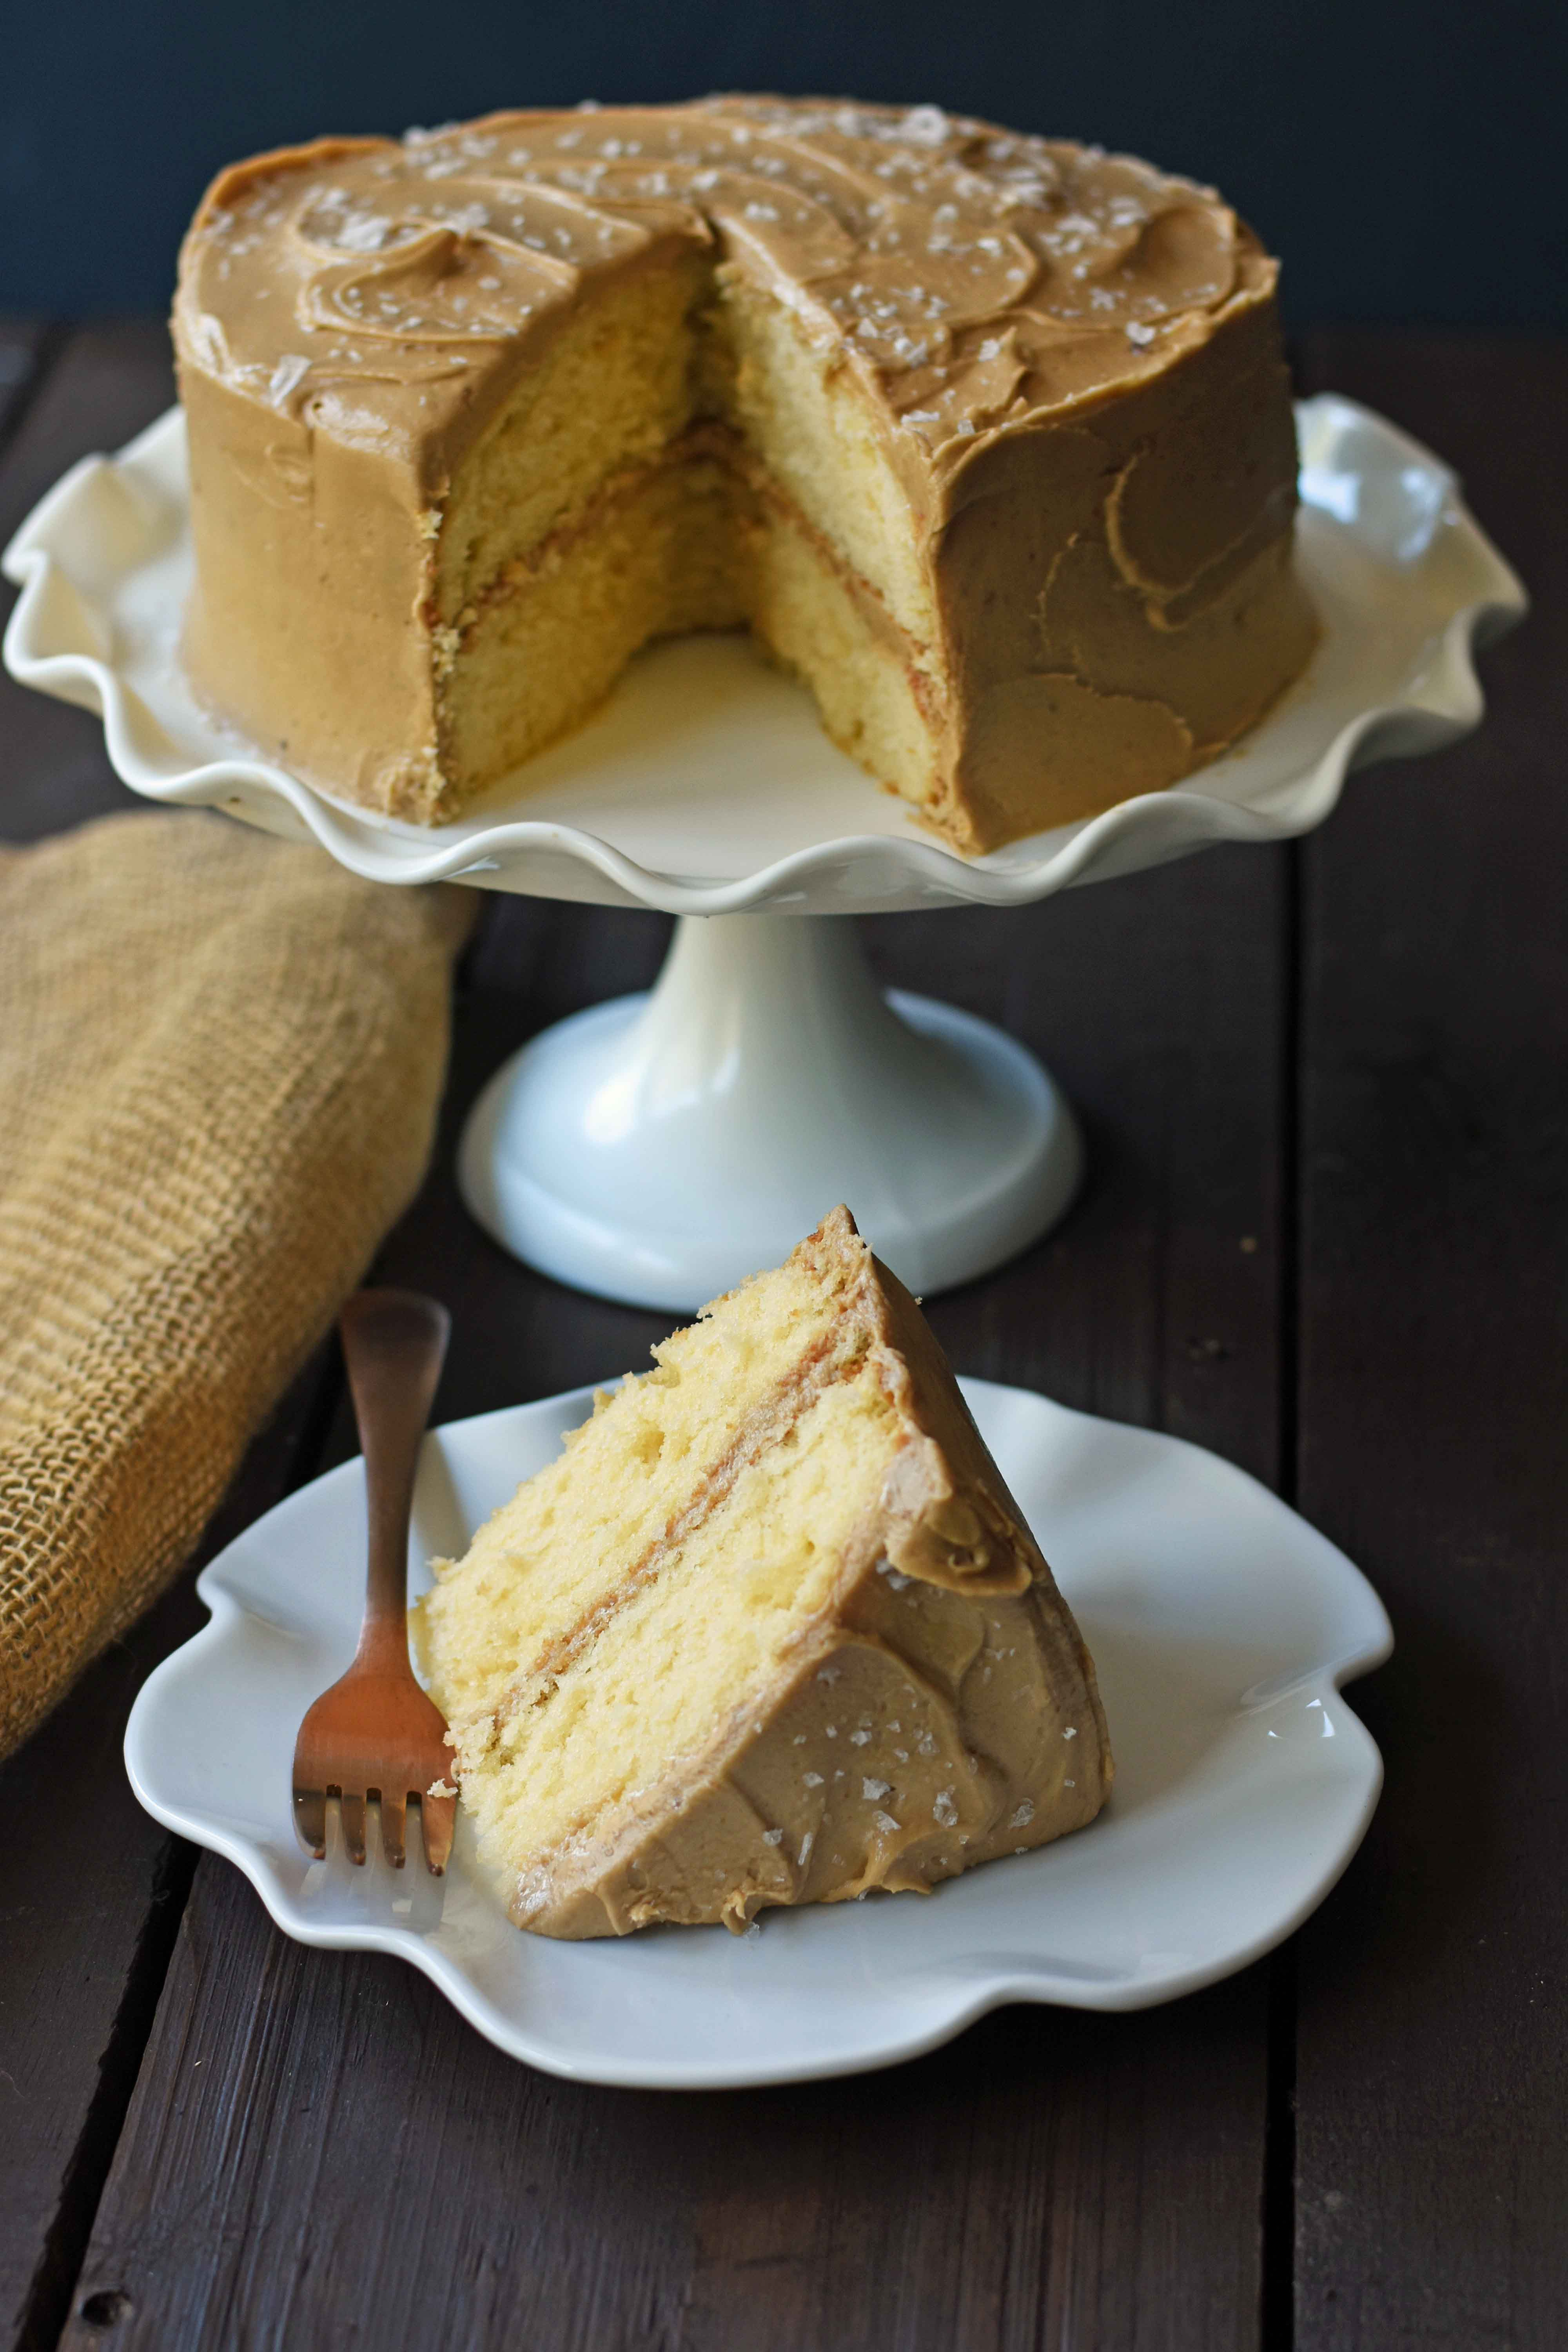 Southern Caramel Cake with Salted Caramel Frosting. A moist and fluffy yellow cake with sea salt caramel frosting. A Southern favorite cake! www.modernhoney.com